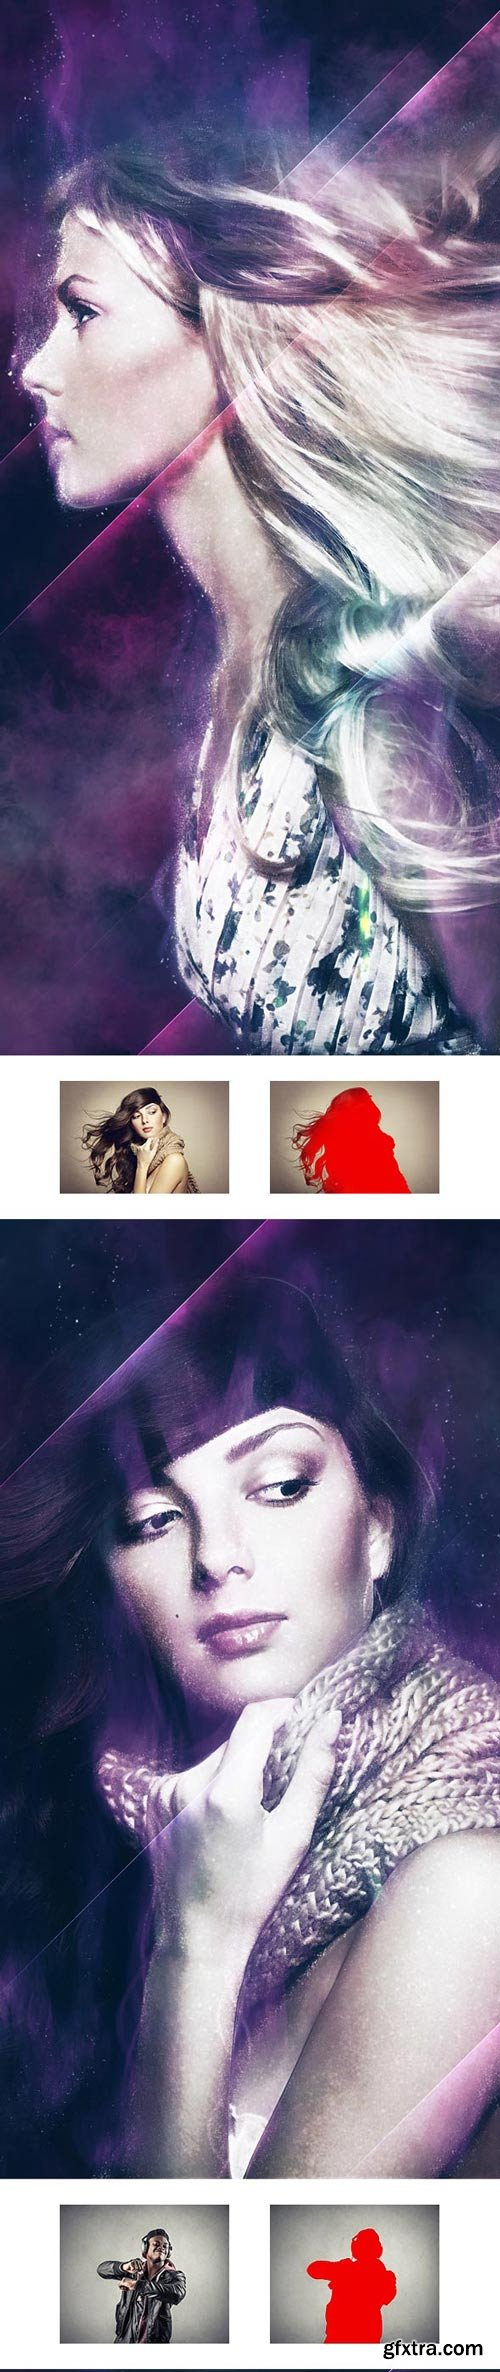 GraphicRiver - Ethereal Dream CS4+ Photoshop Action - 22715650